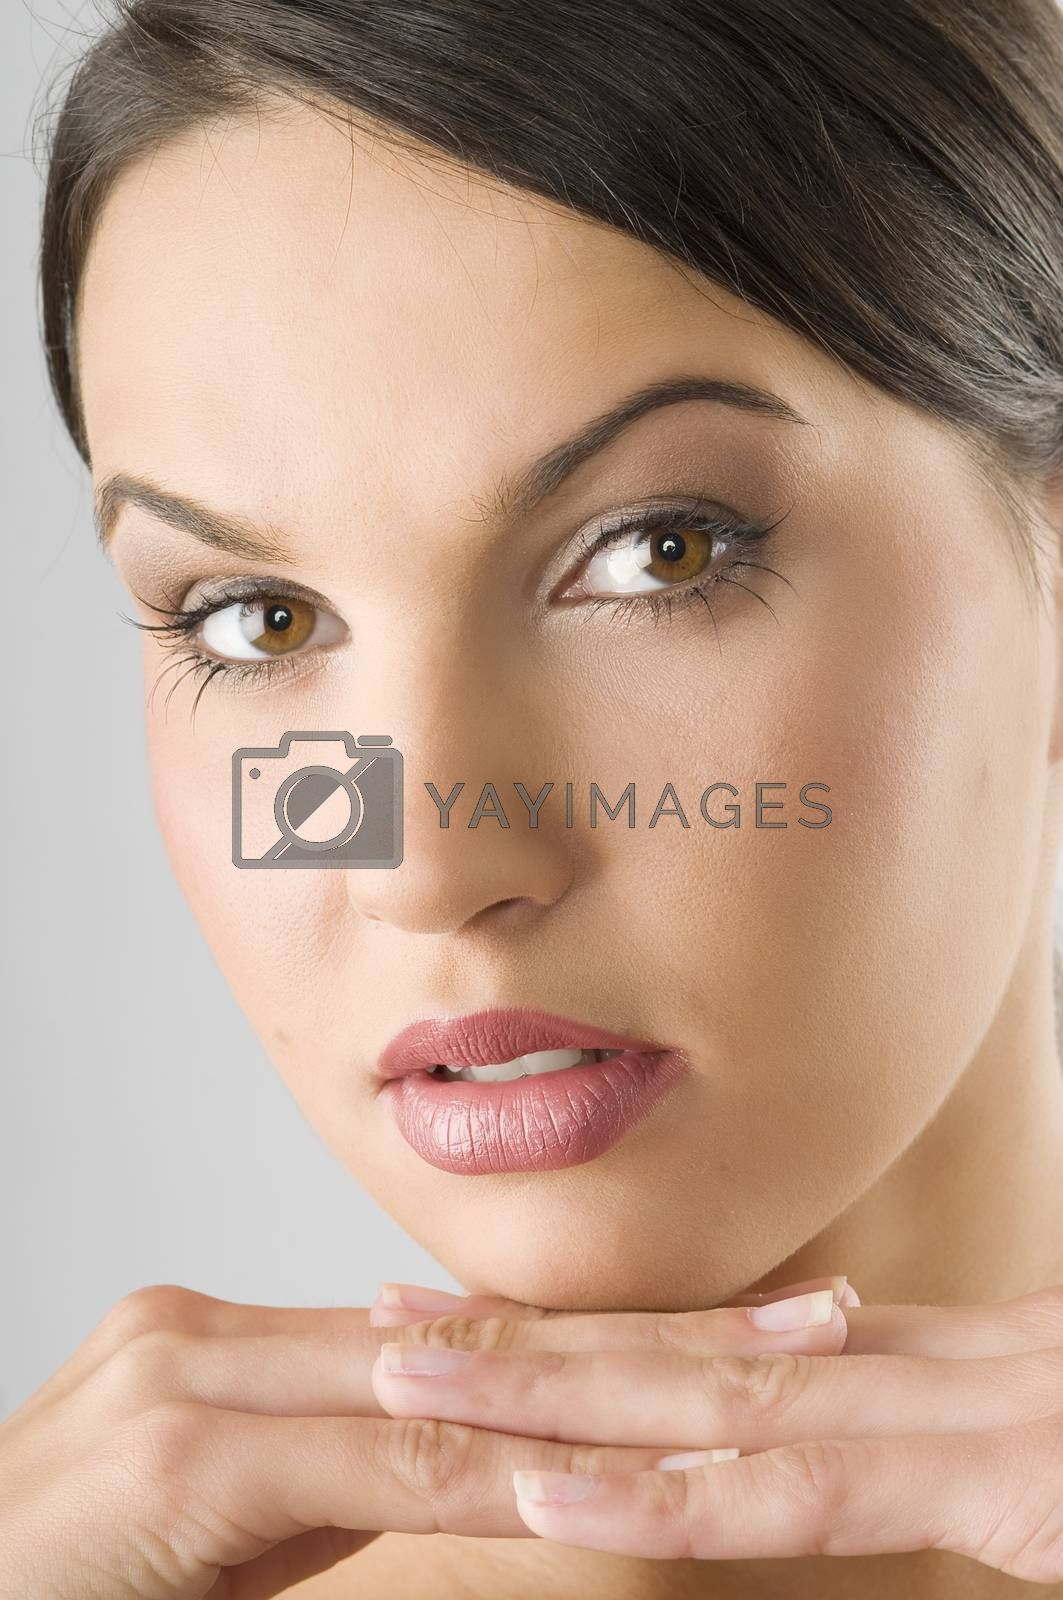 Royalty free image of my sensual eyes by fotoCD